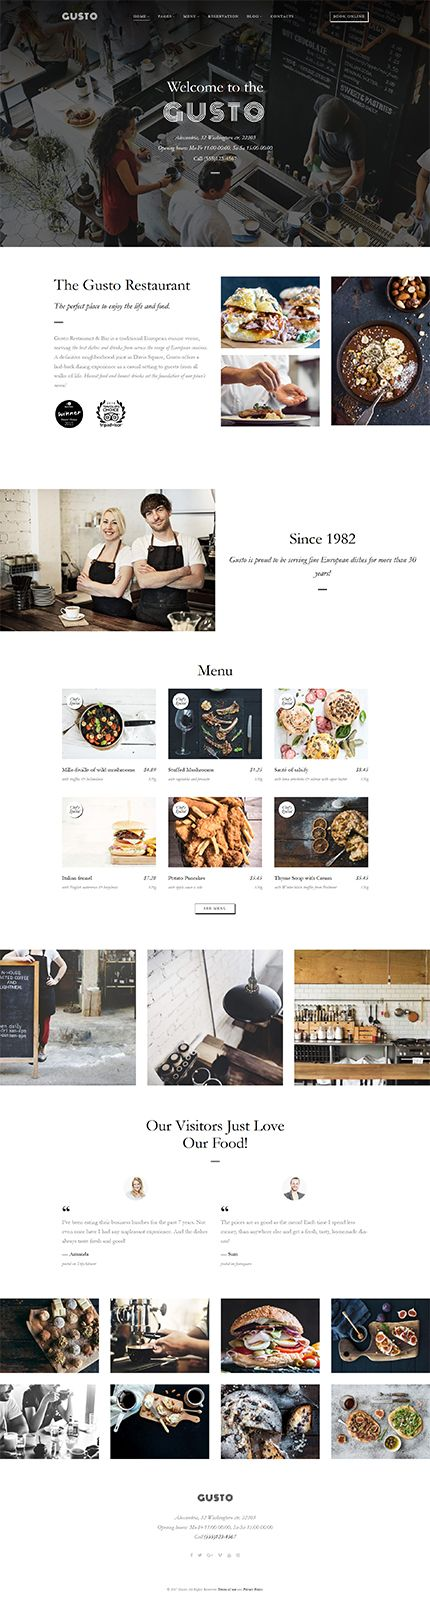 Cafe and Restaurant website inspirations at your coffee break? Browse for more WordPress #templates! // Regular price: $75 // Sources available:.PHP, This theme is widgetized #Last Added #Cafe #Restaurant #WordPress #Theme